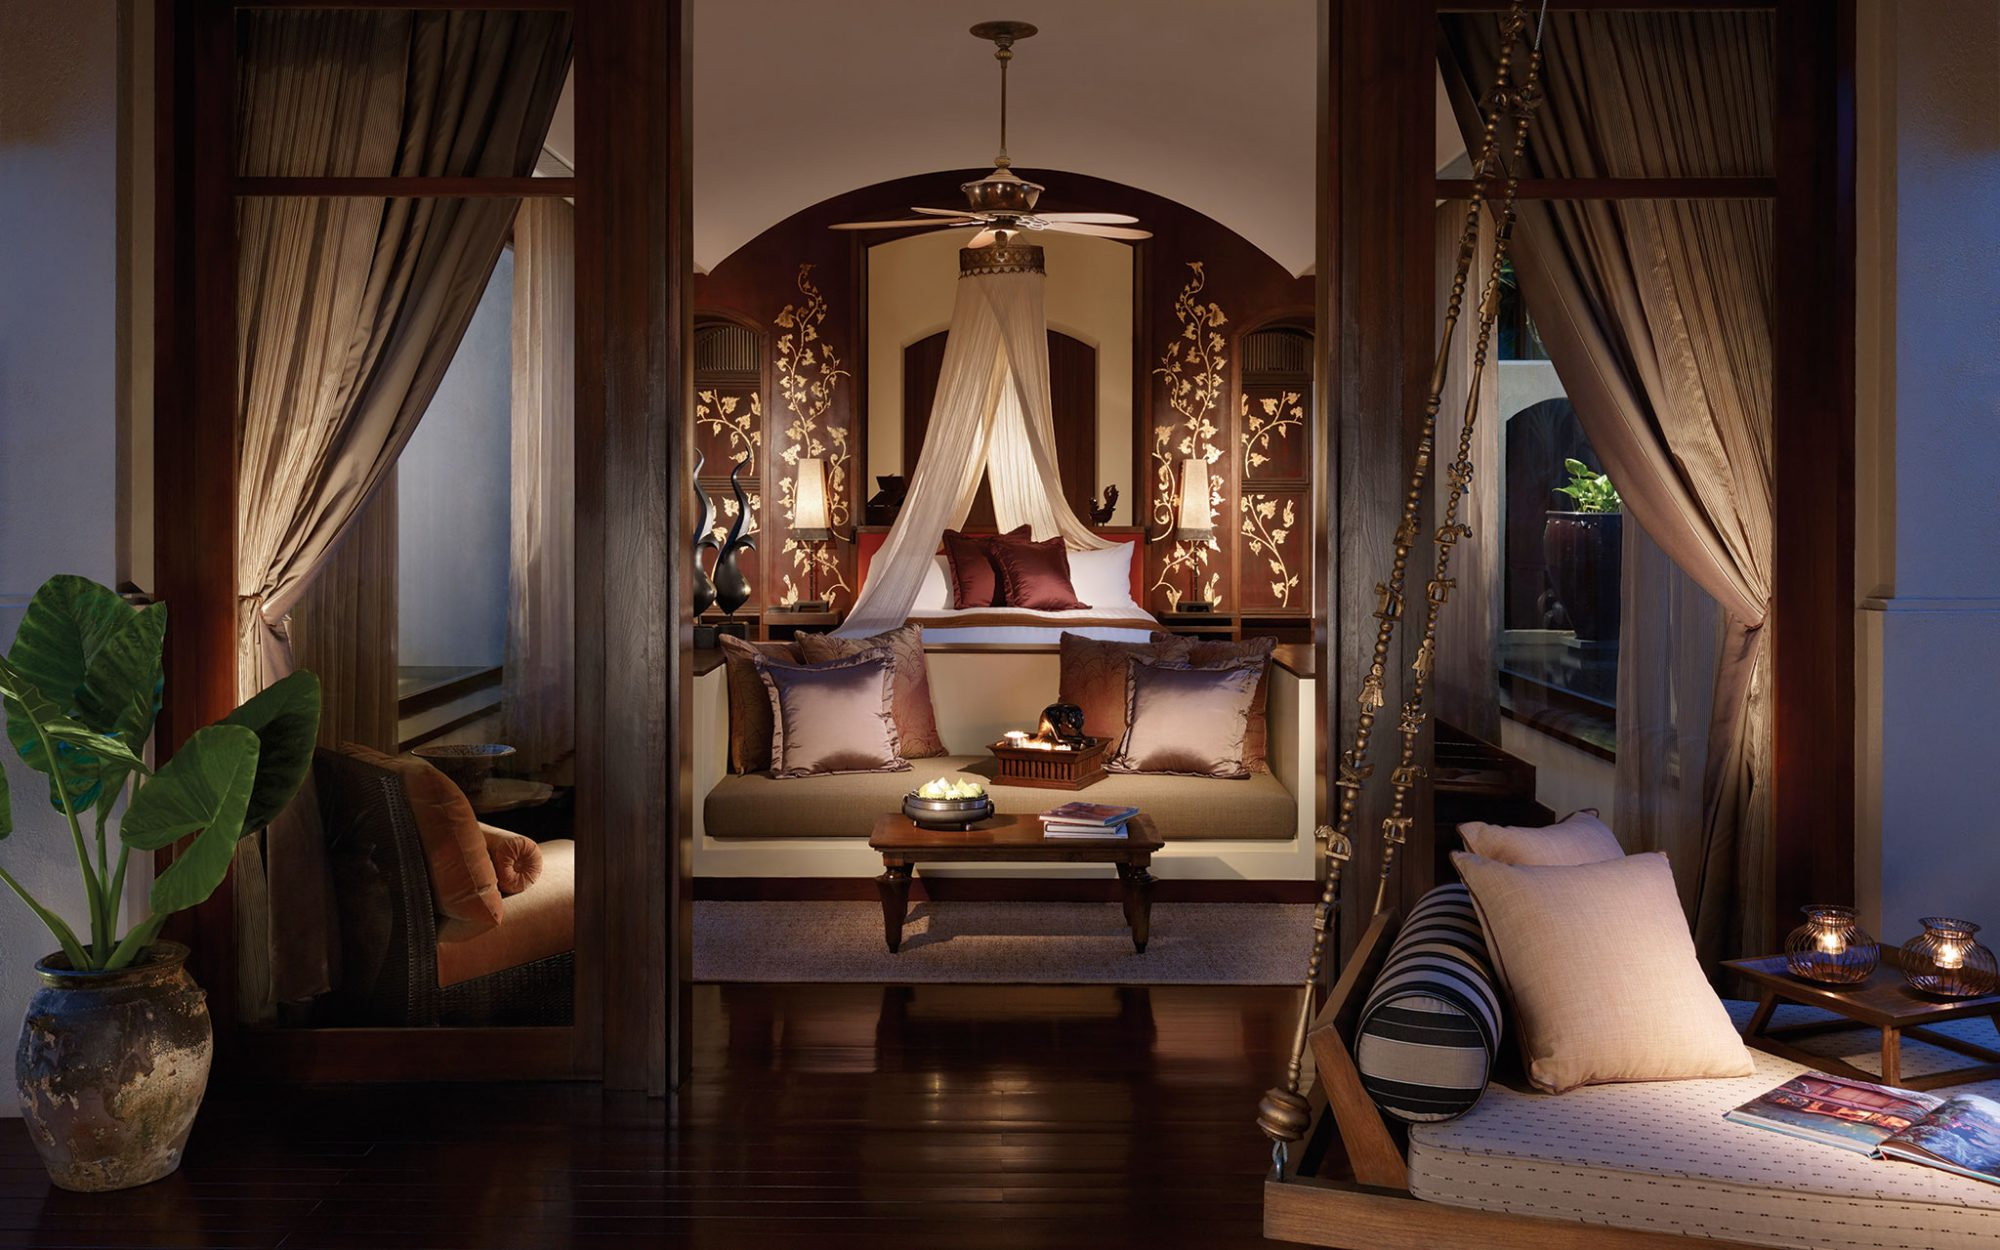 World's Most Romantic Hotels: No. 22 Four Seasons Resort Chiang Mai, Thailand